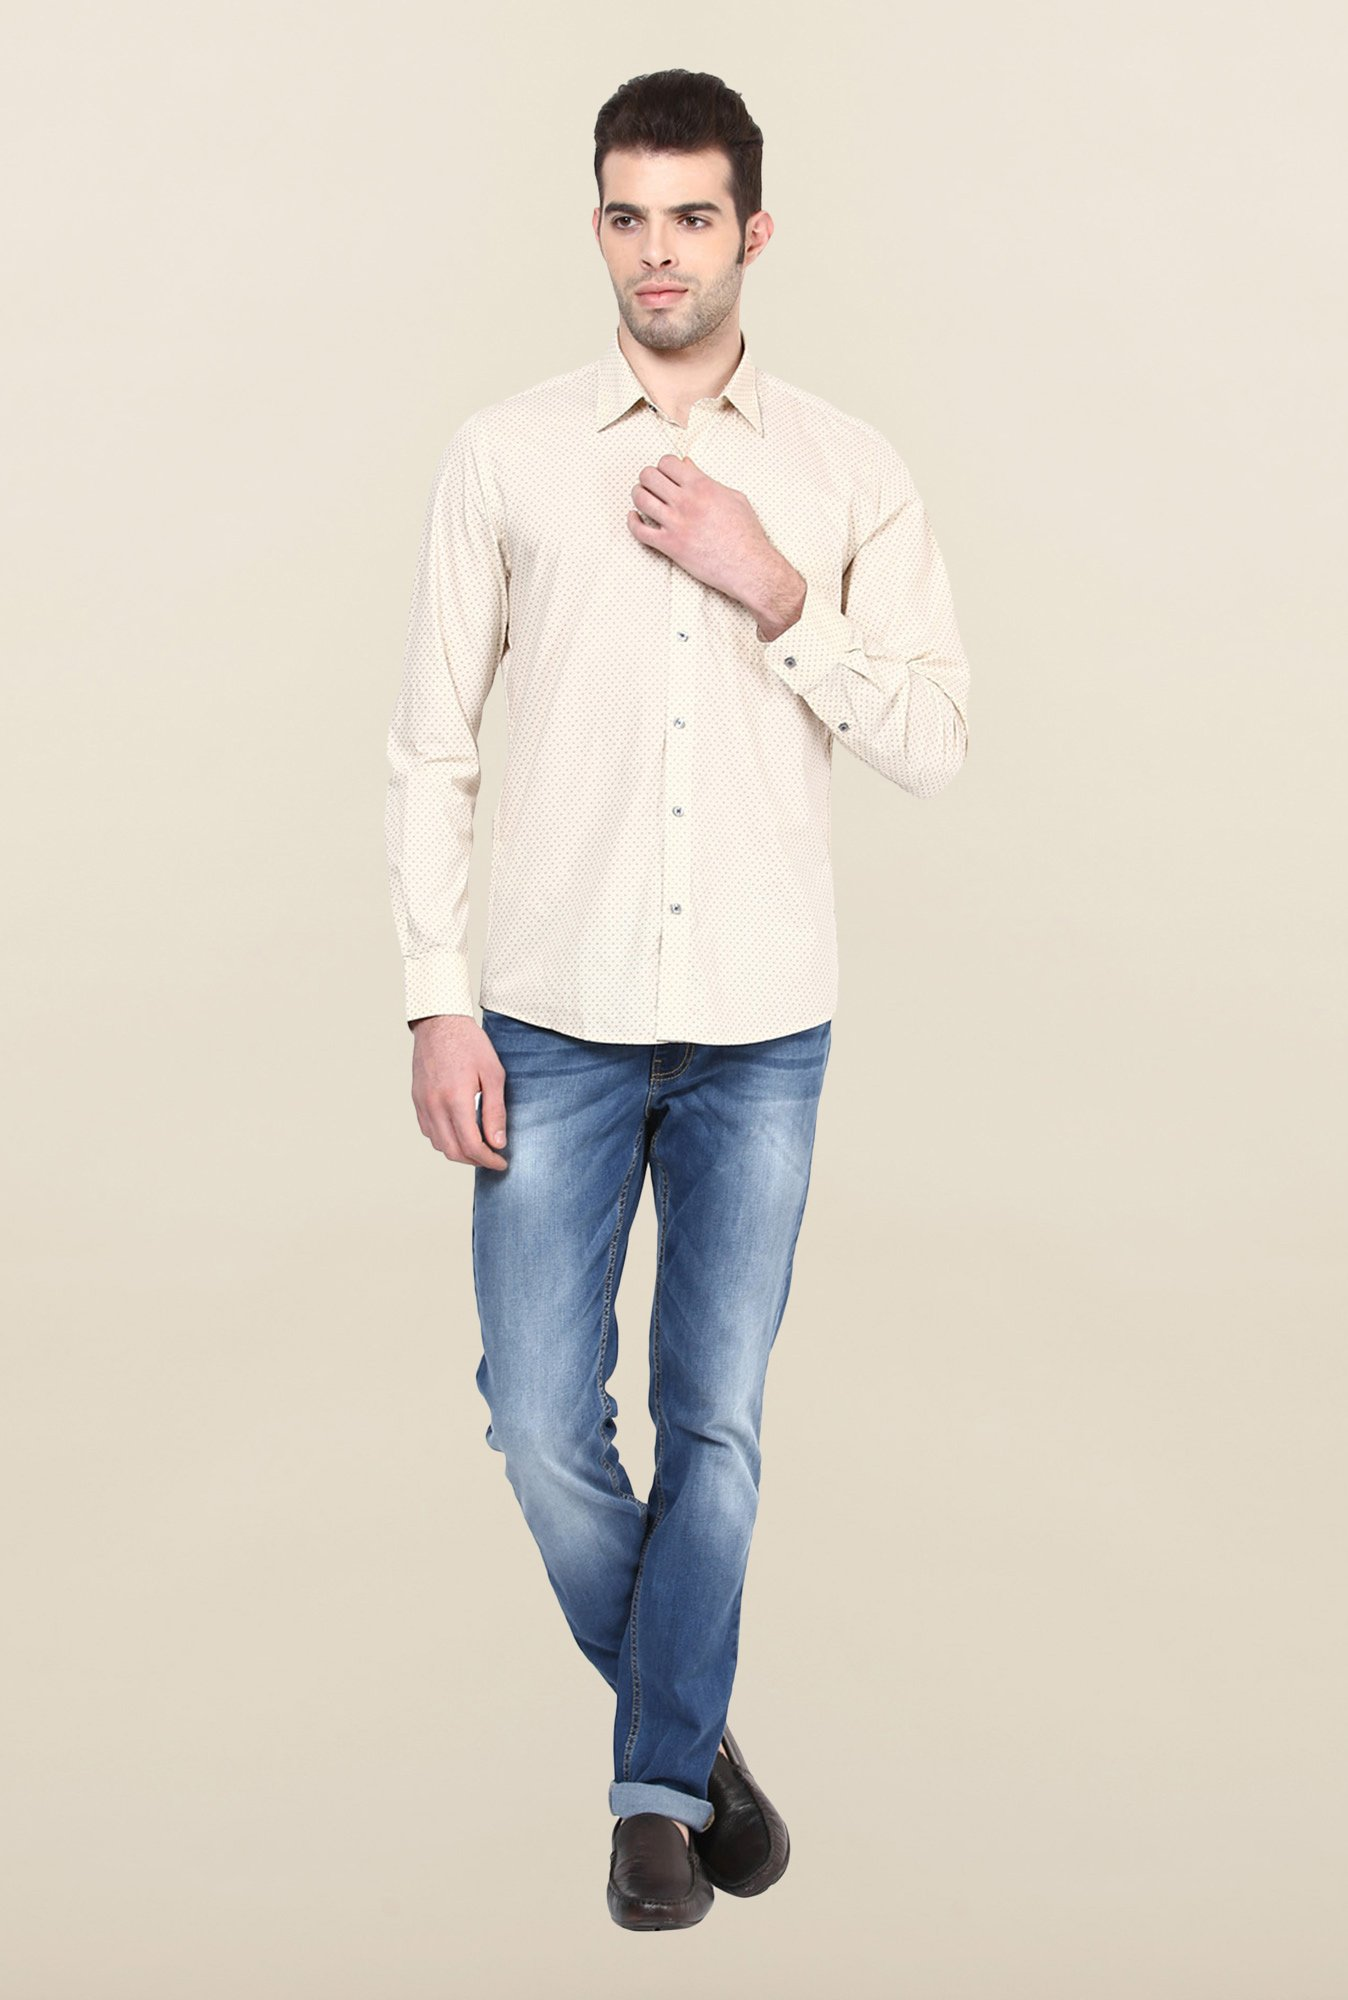 Turtle Beige Printed Formal Shirt